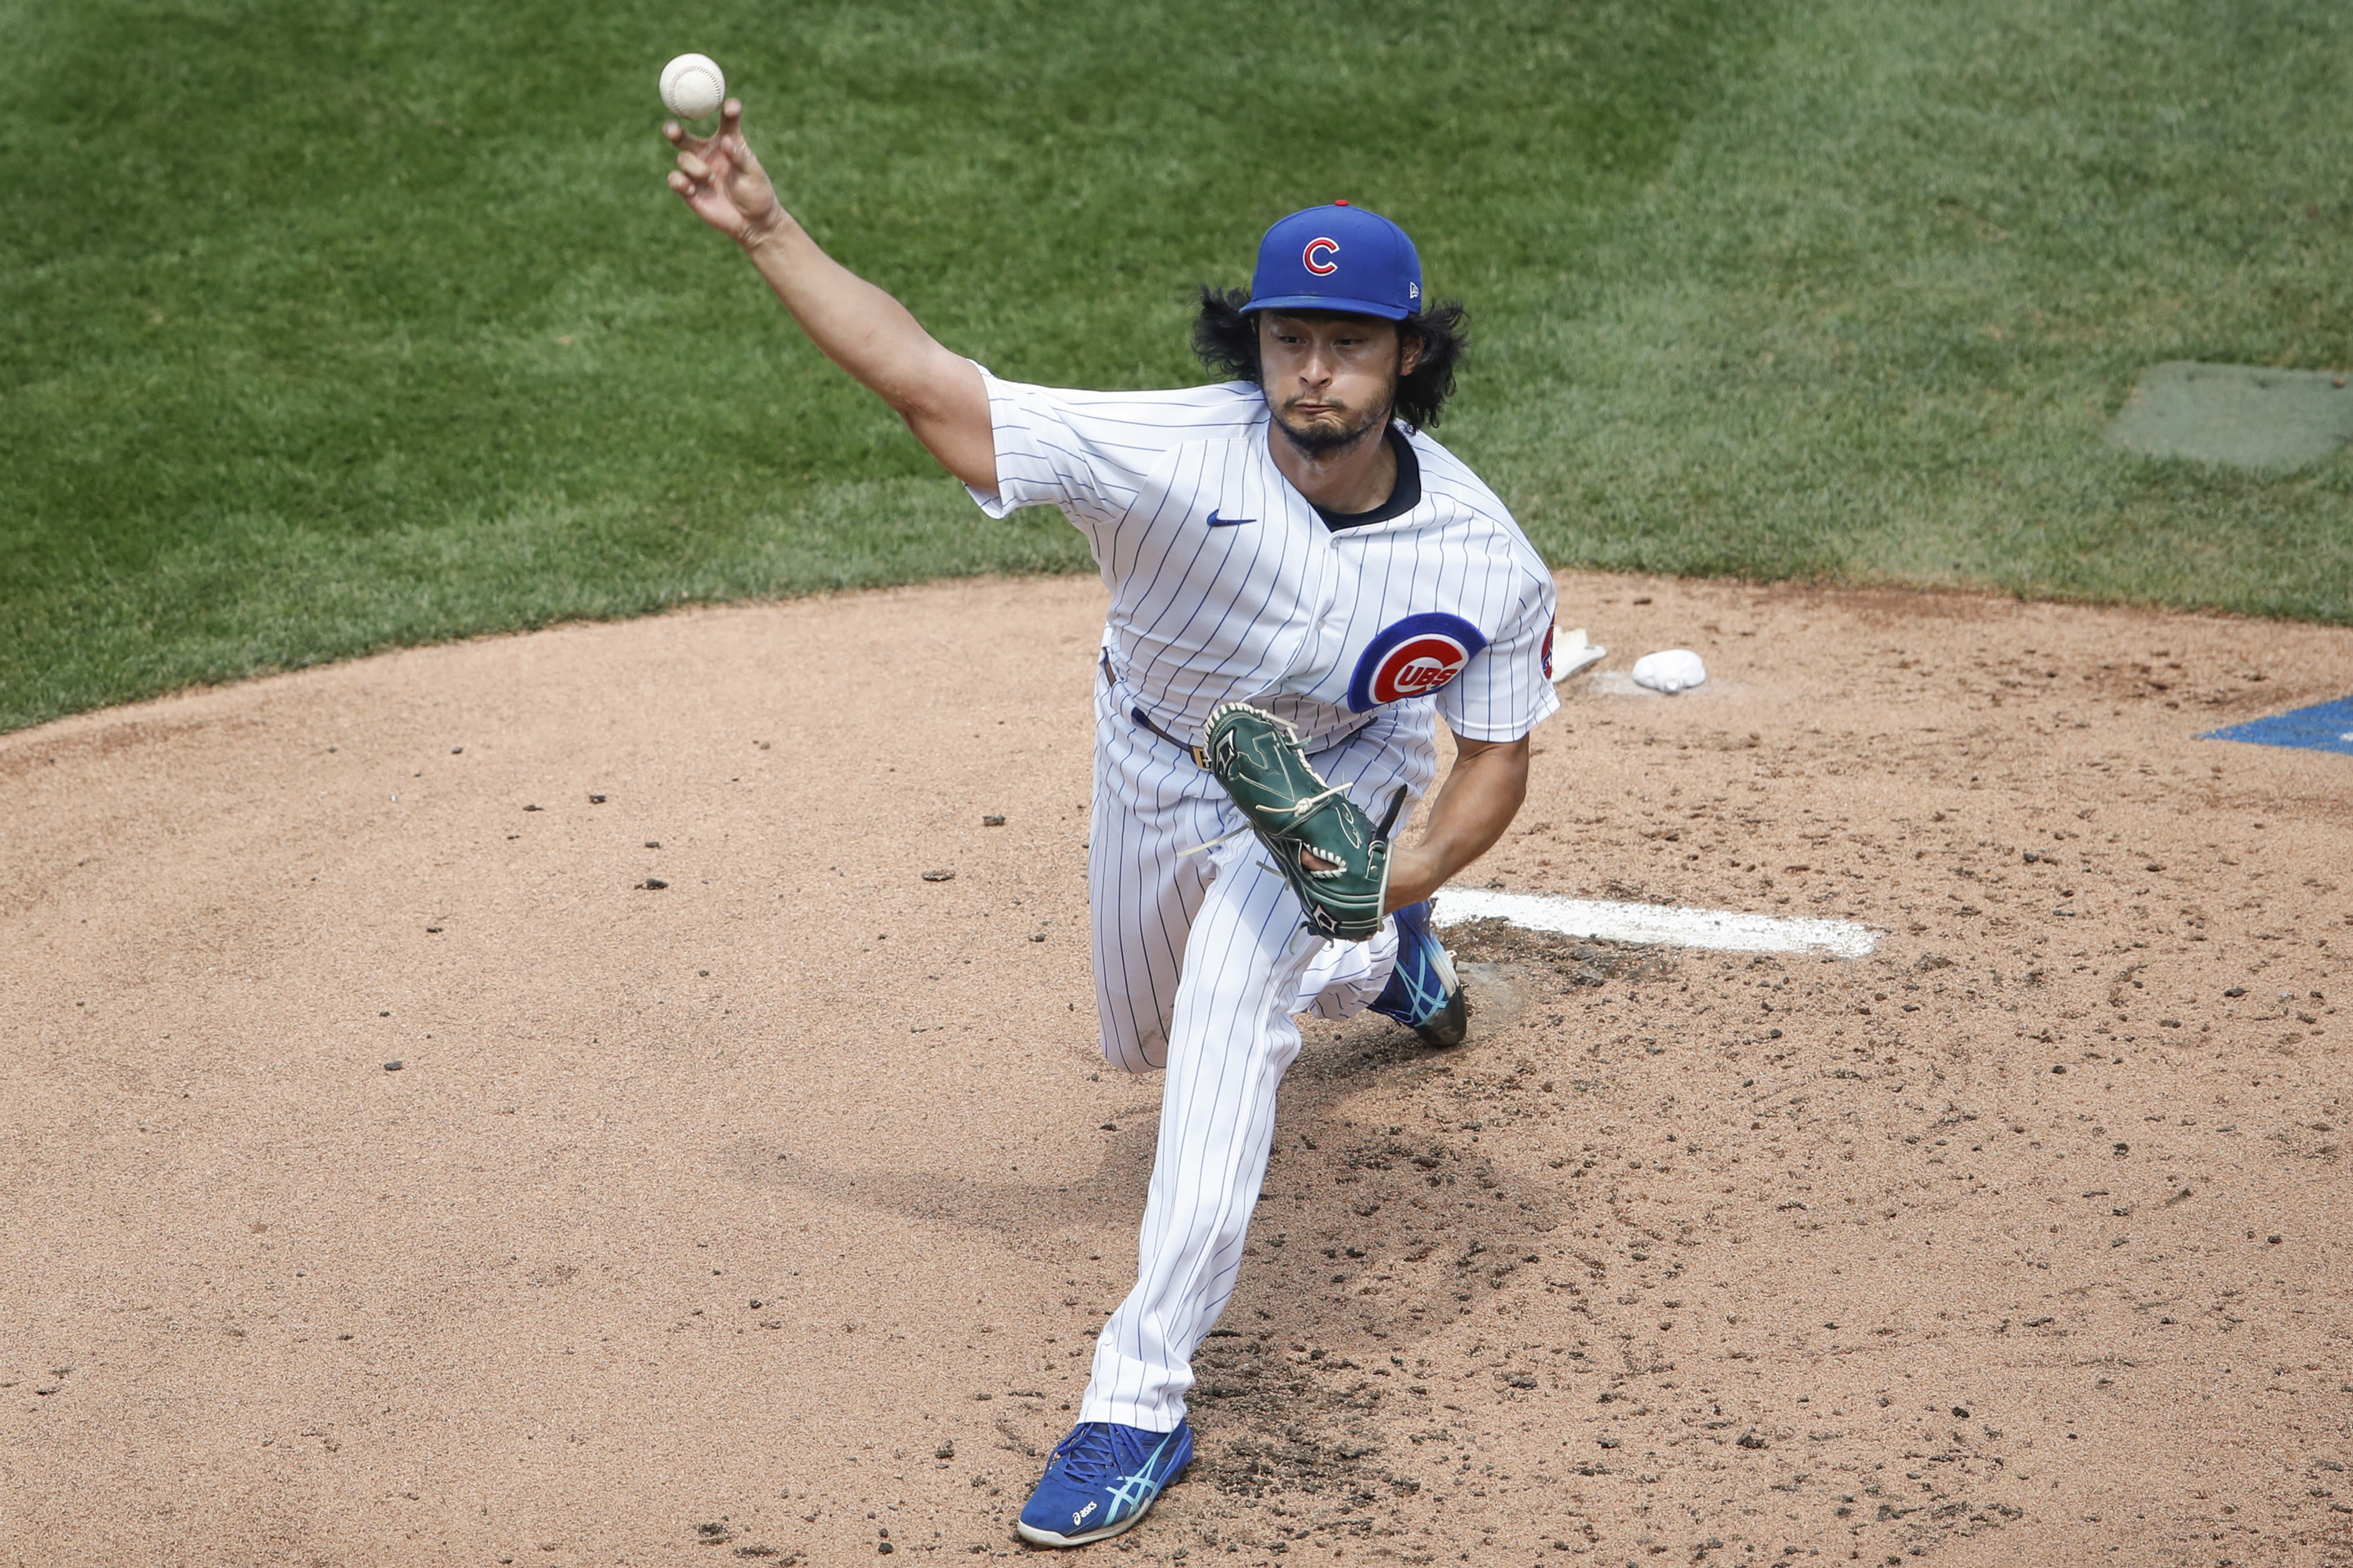 Chicago Cubs starting pitcher Yu Darvish delivers against the Chicago White Sox during the second inning of a baseball game, Sunday, Aug. 23, 2020, in Chicago. (AP Photo/Kamil Krzaczynski)